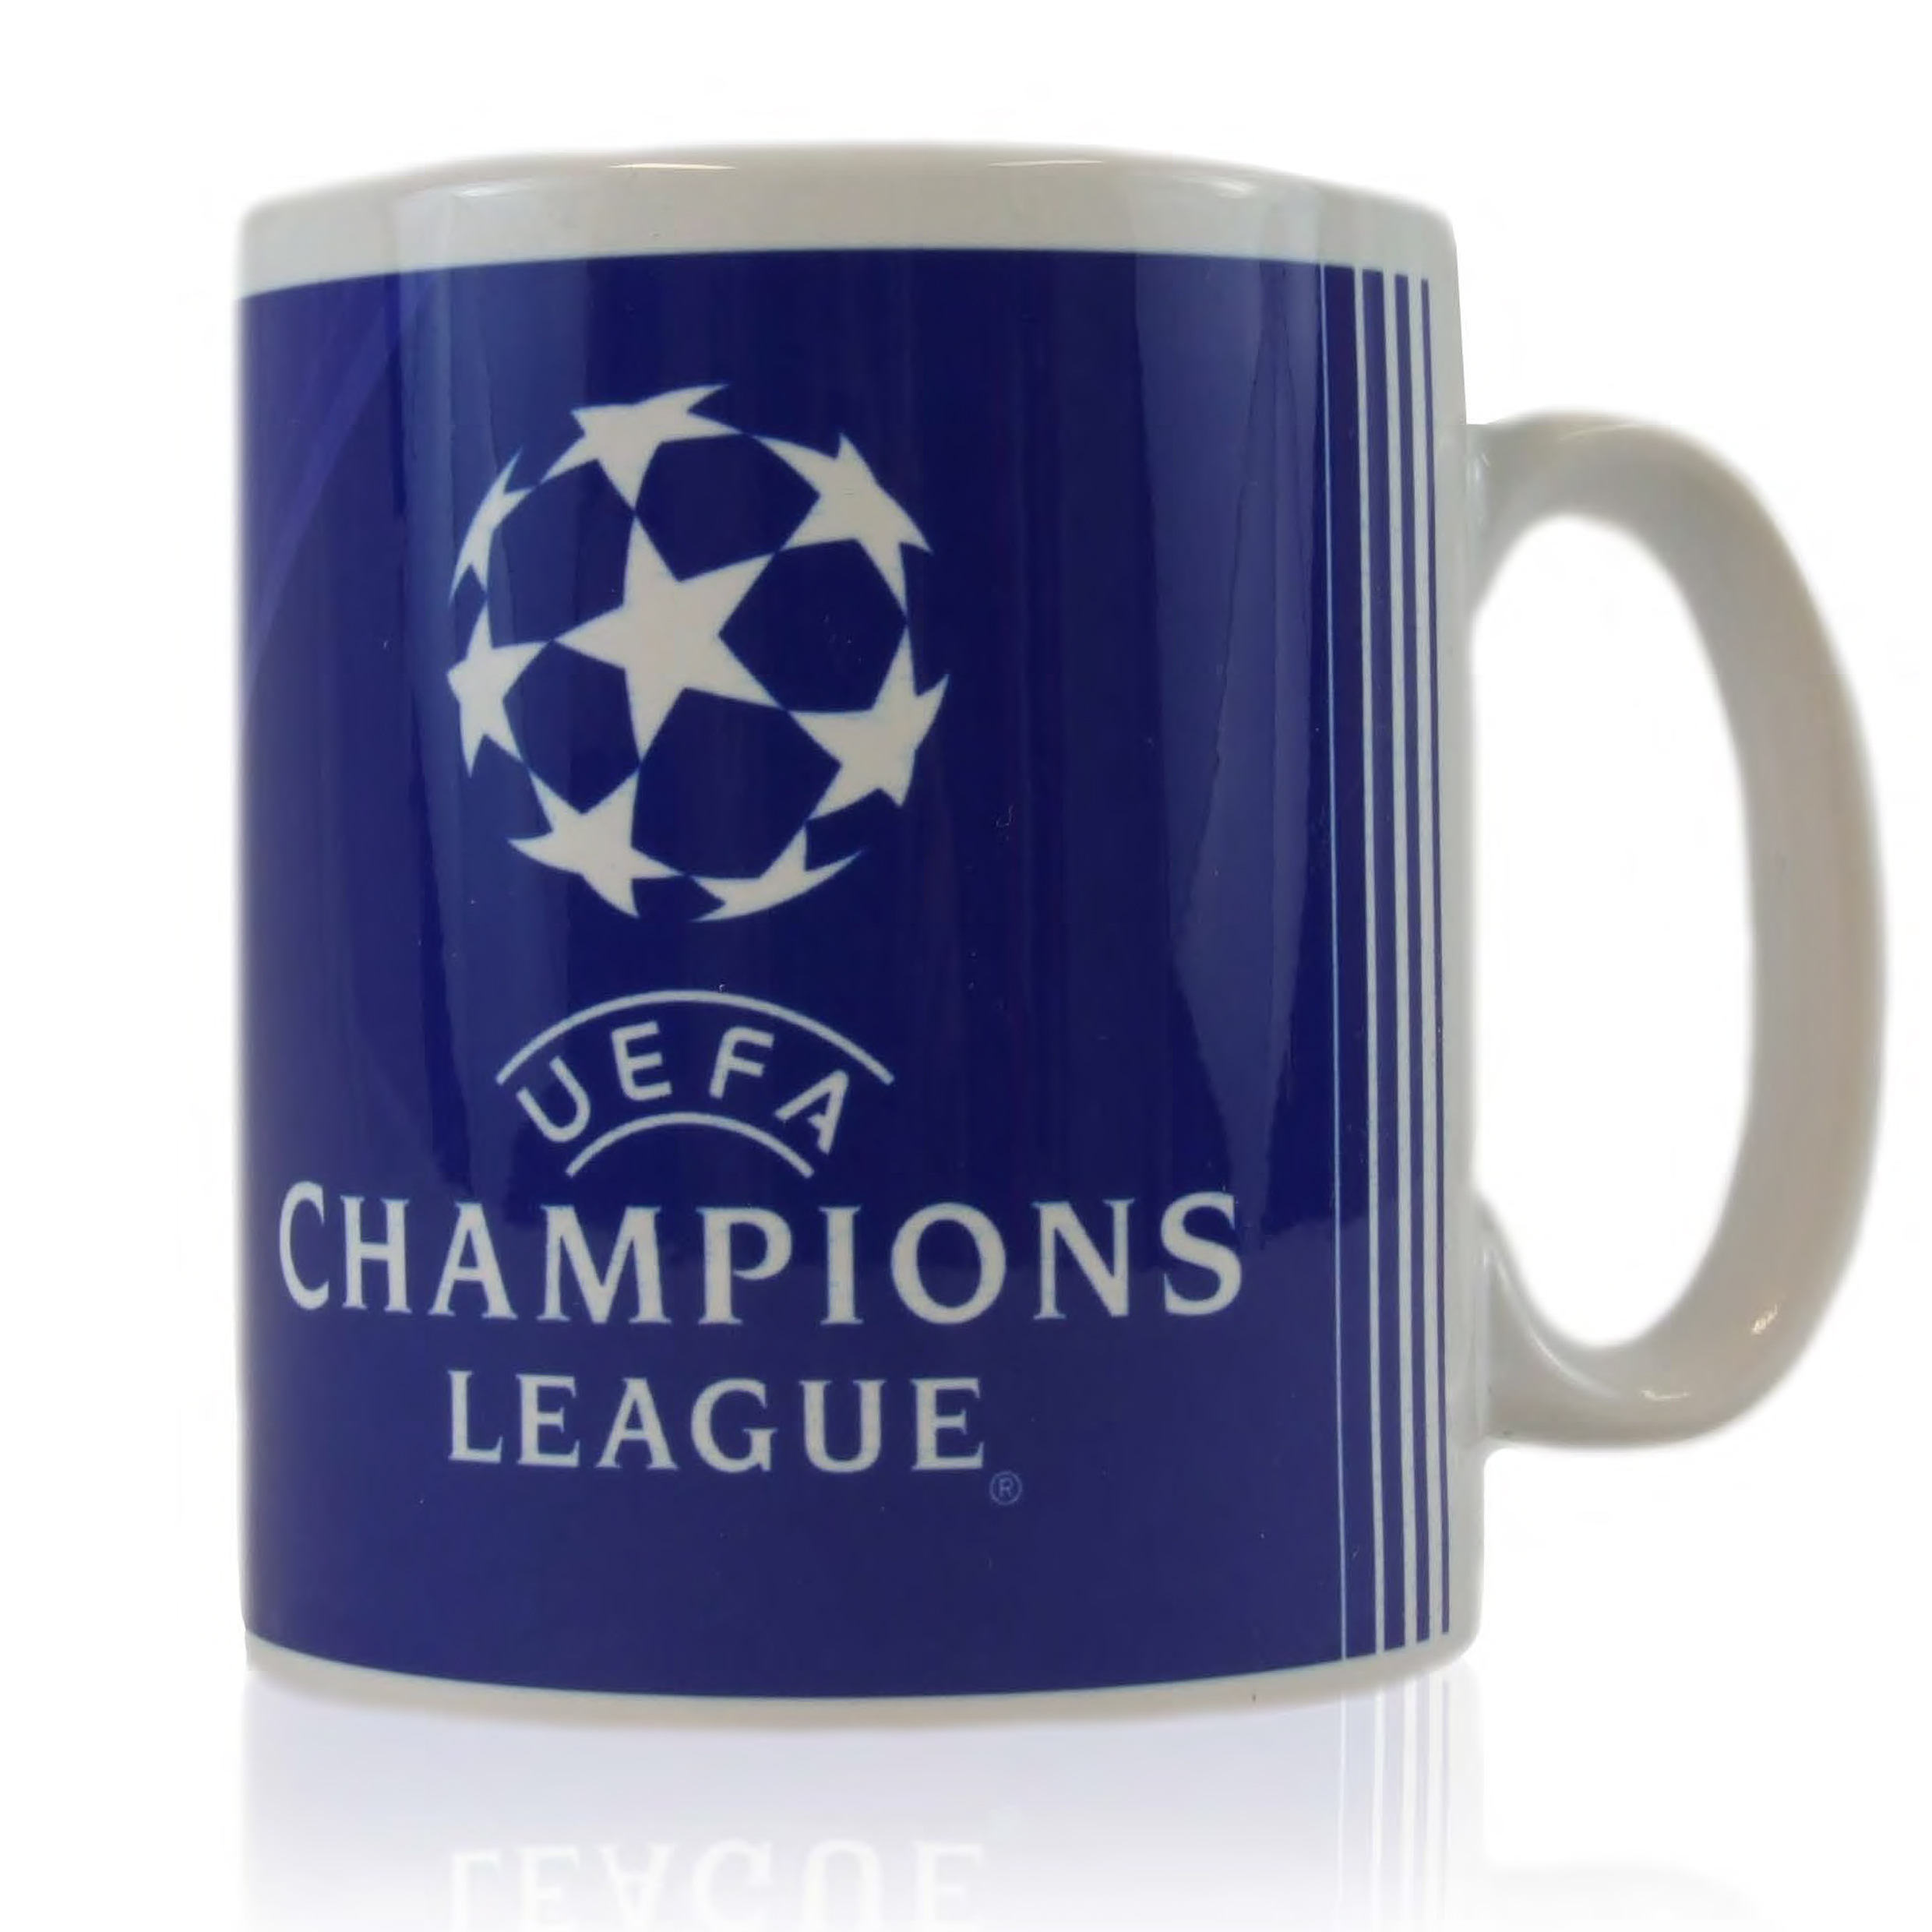 UEFA Champions League Mug - Blue